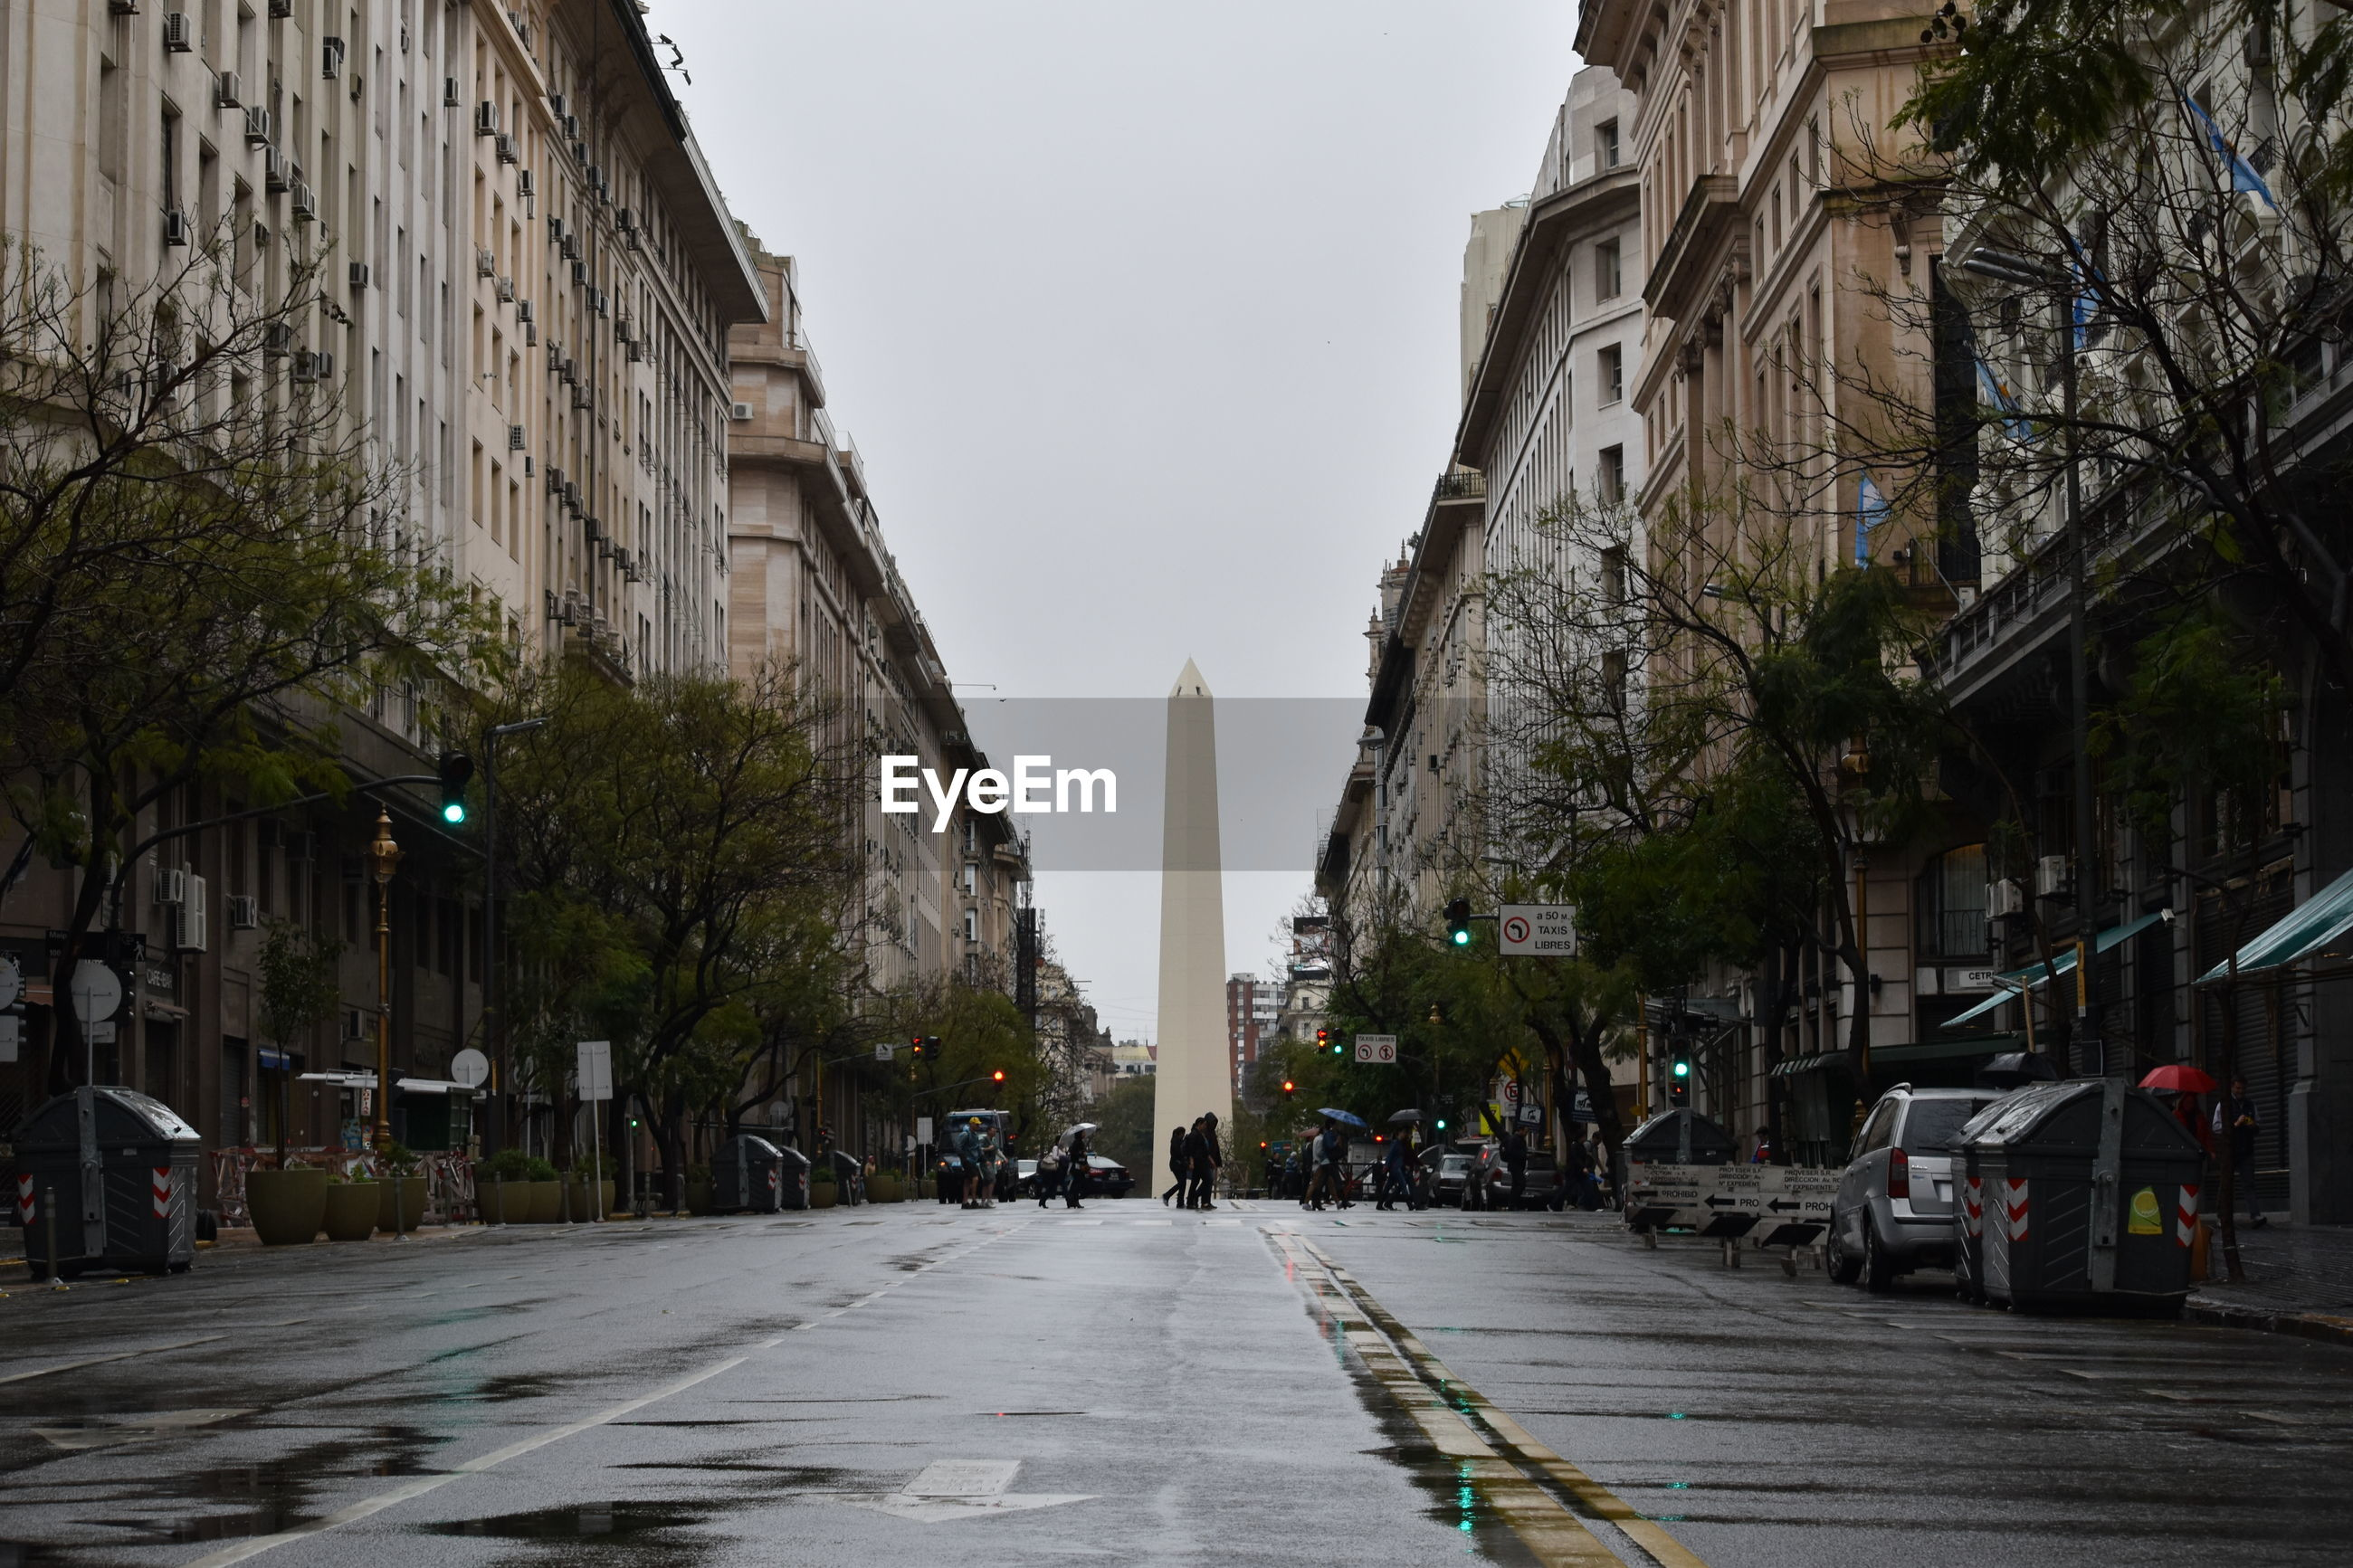 VIEW OF STREET IN FRONT OF BUILDINGS